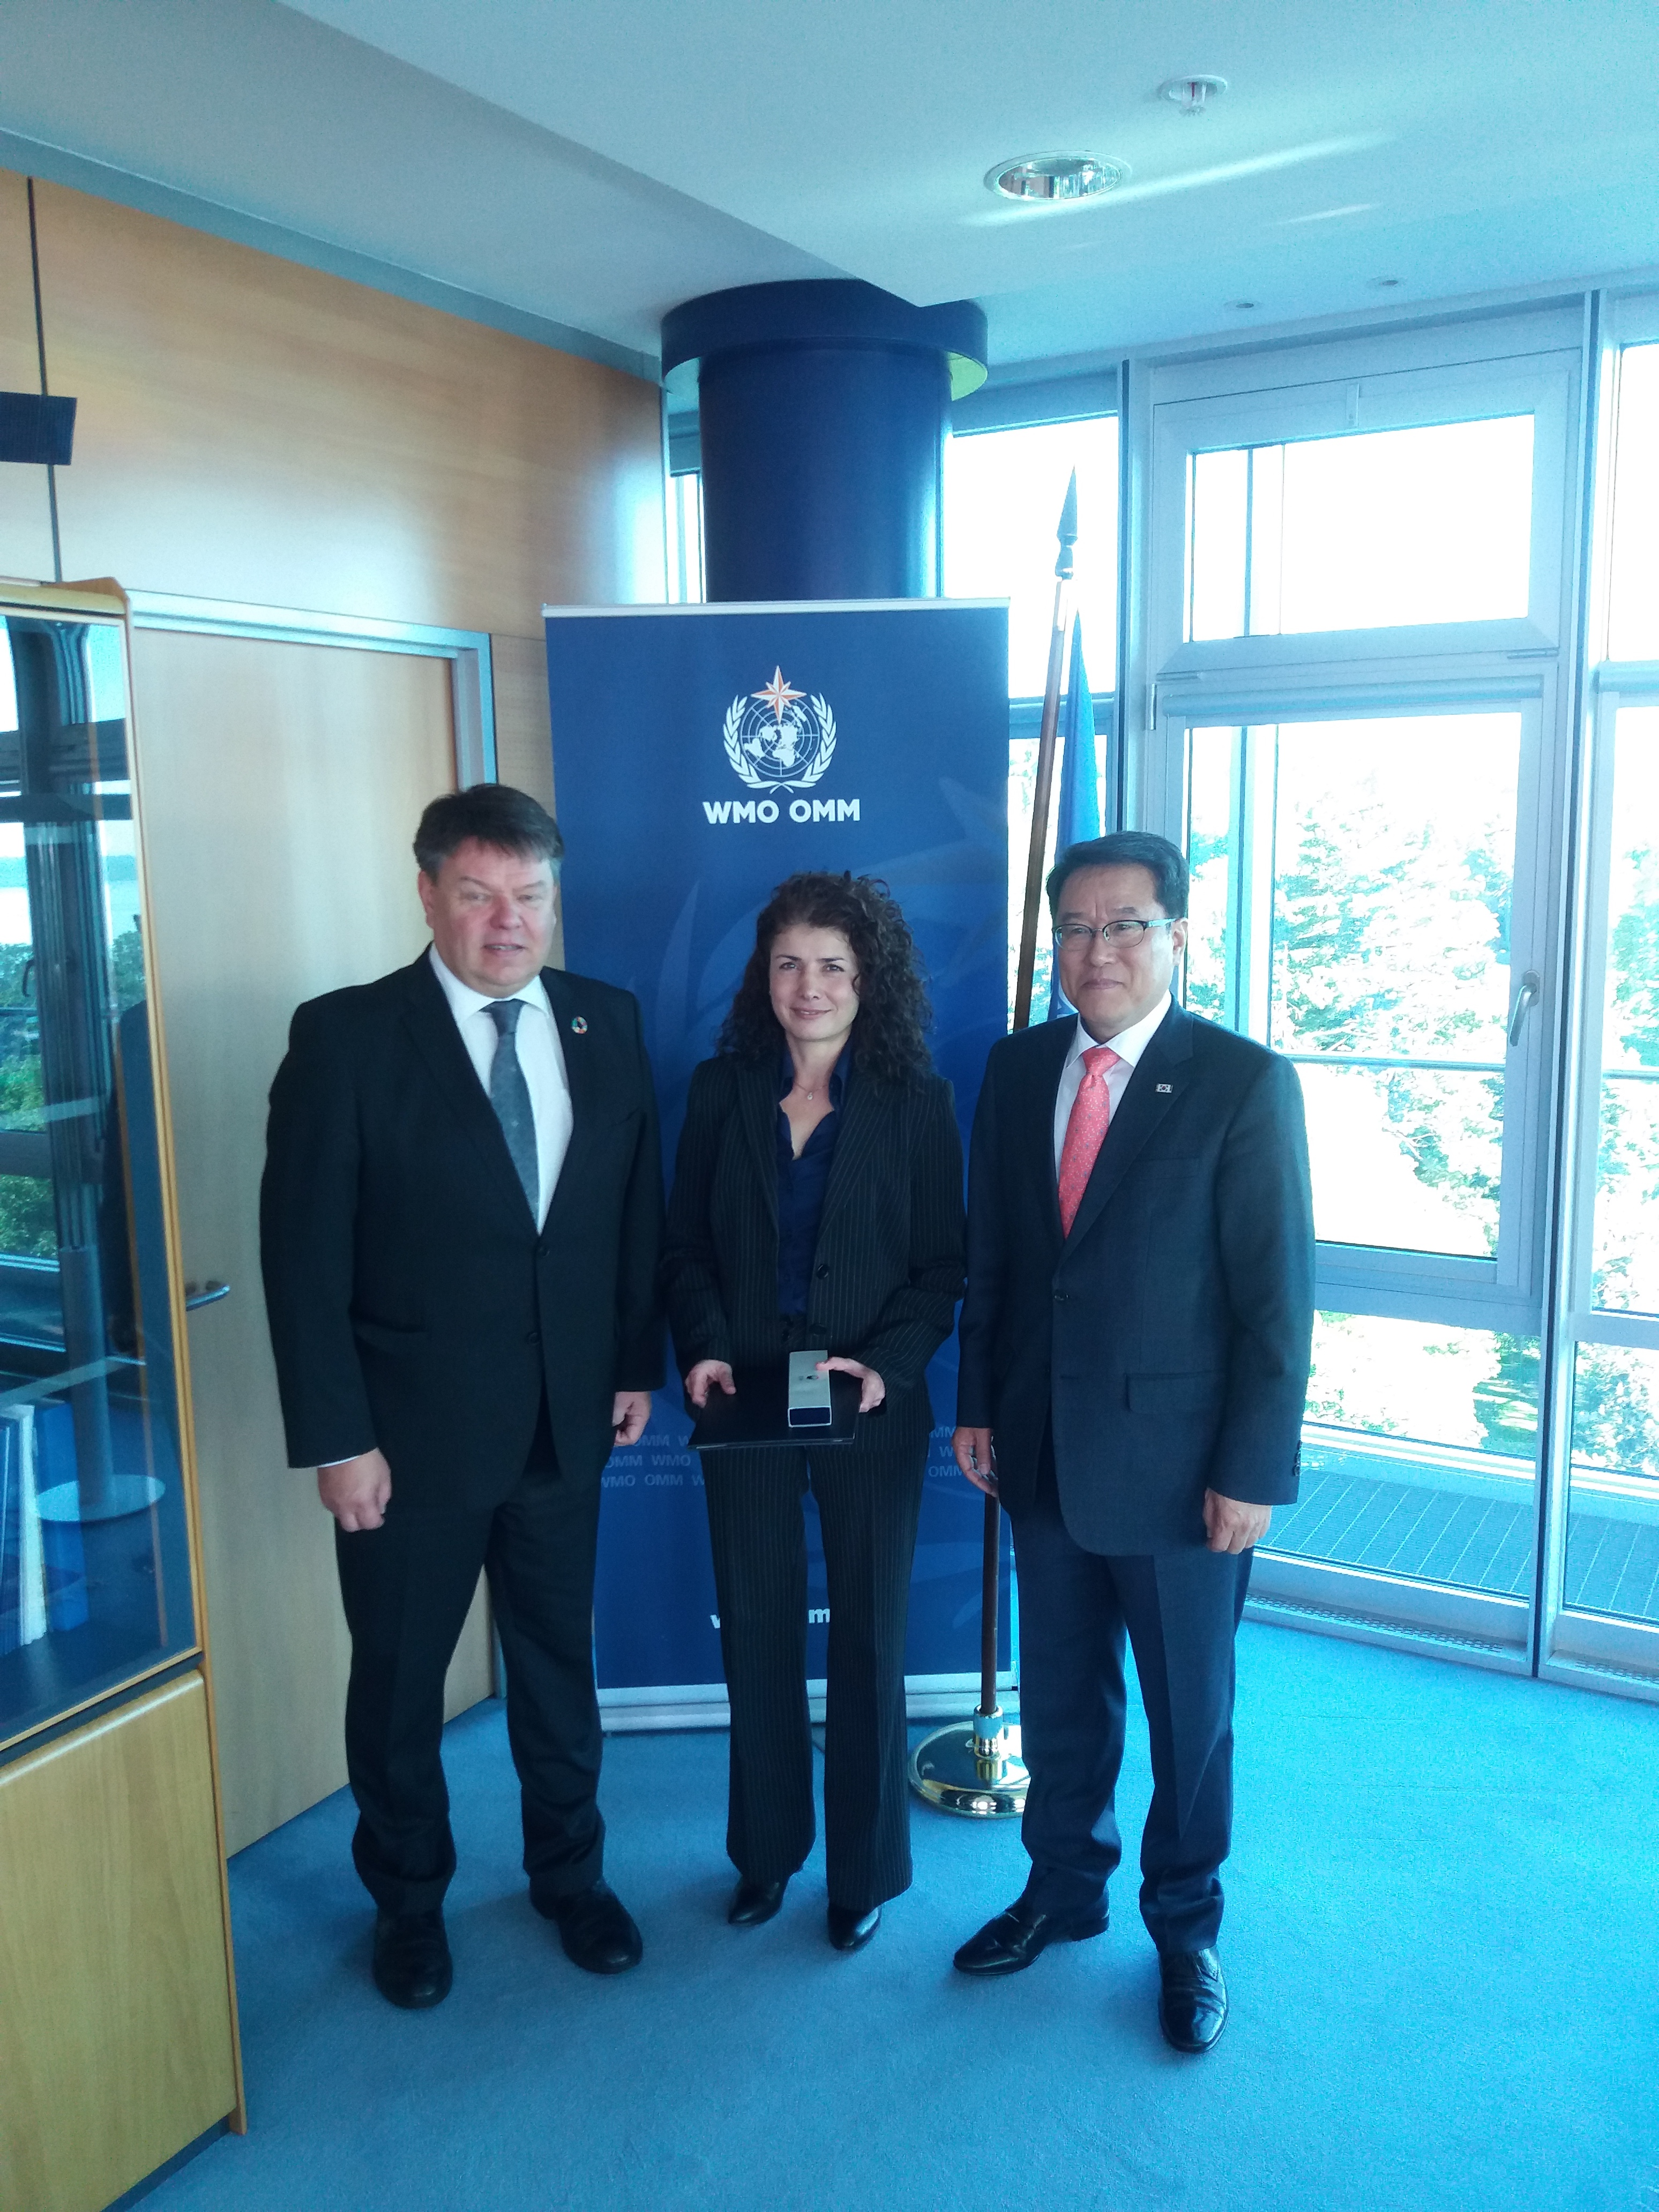 Jae-cheol Nam, Vice Adminstrator of the Korea Meteorological Administration (KMA), gives certificate of recognition to Ayșe Altunoğlu, head of WMO's project coordination unit